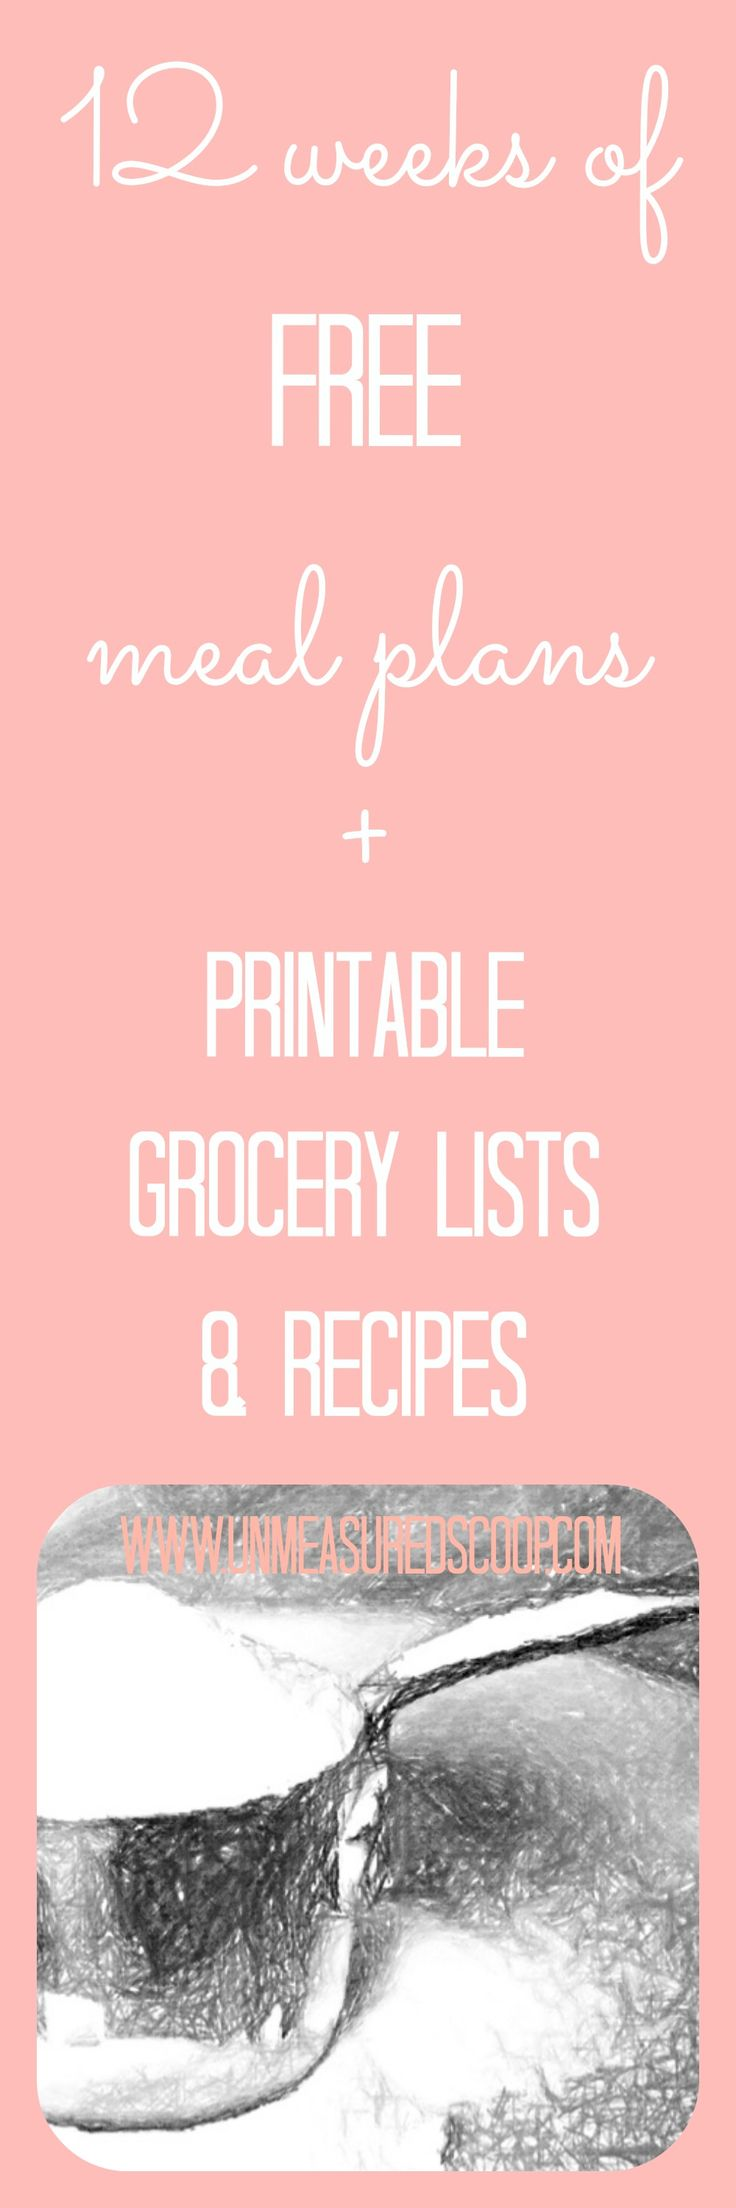 12 Weeks of FREE Meal Plans + grocery lists & printable recipes   The Unmeasured Scoop